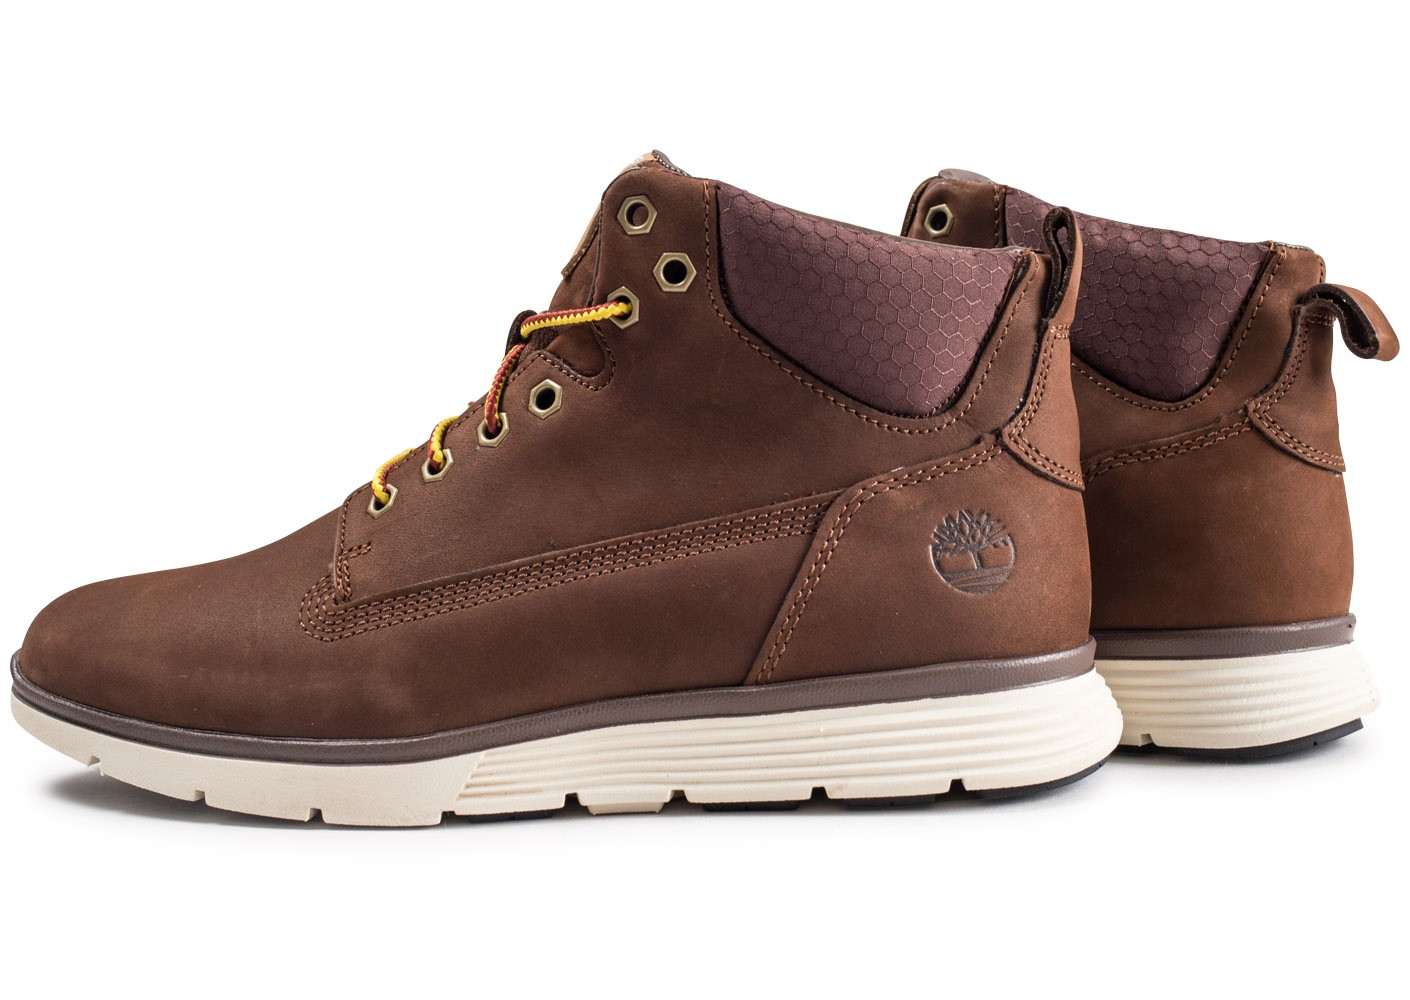 Timberland Killington Chukka marron Chaussures Baskets